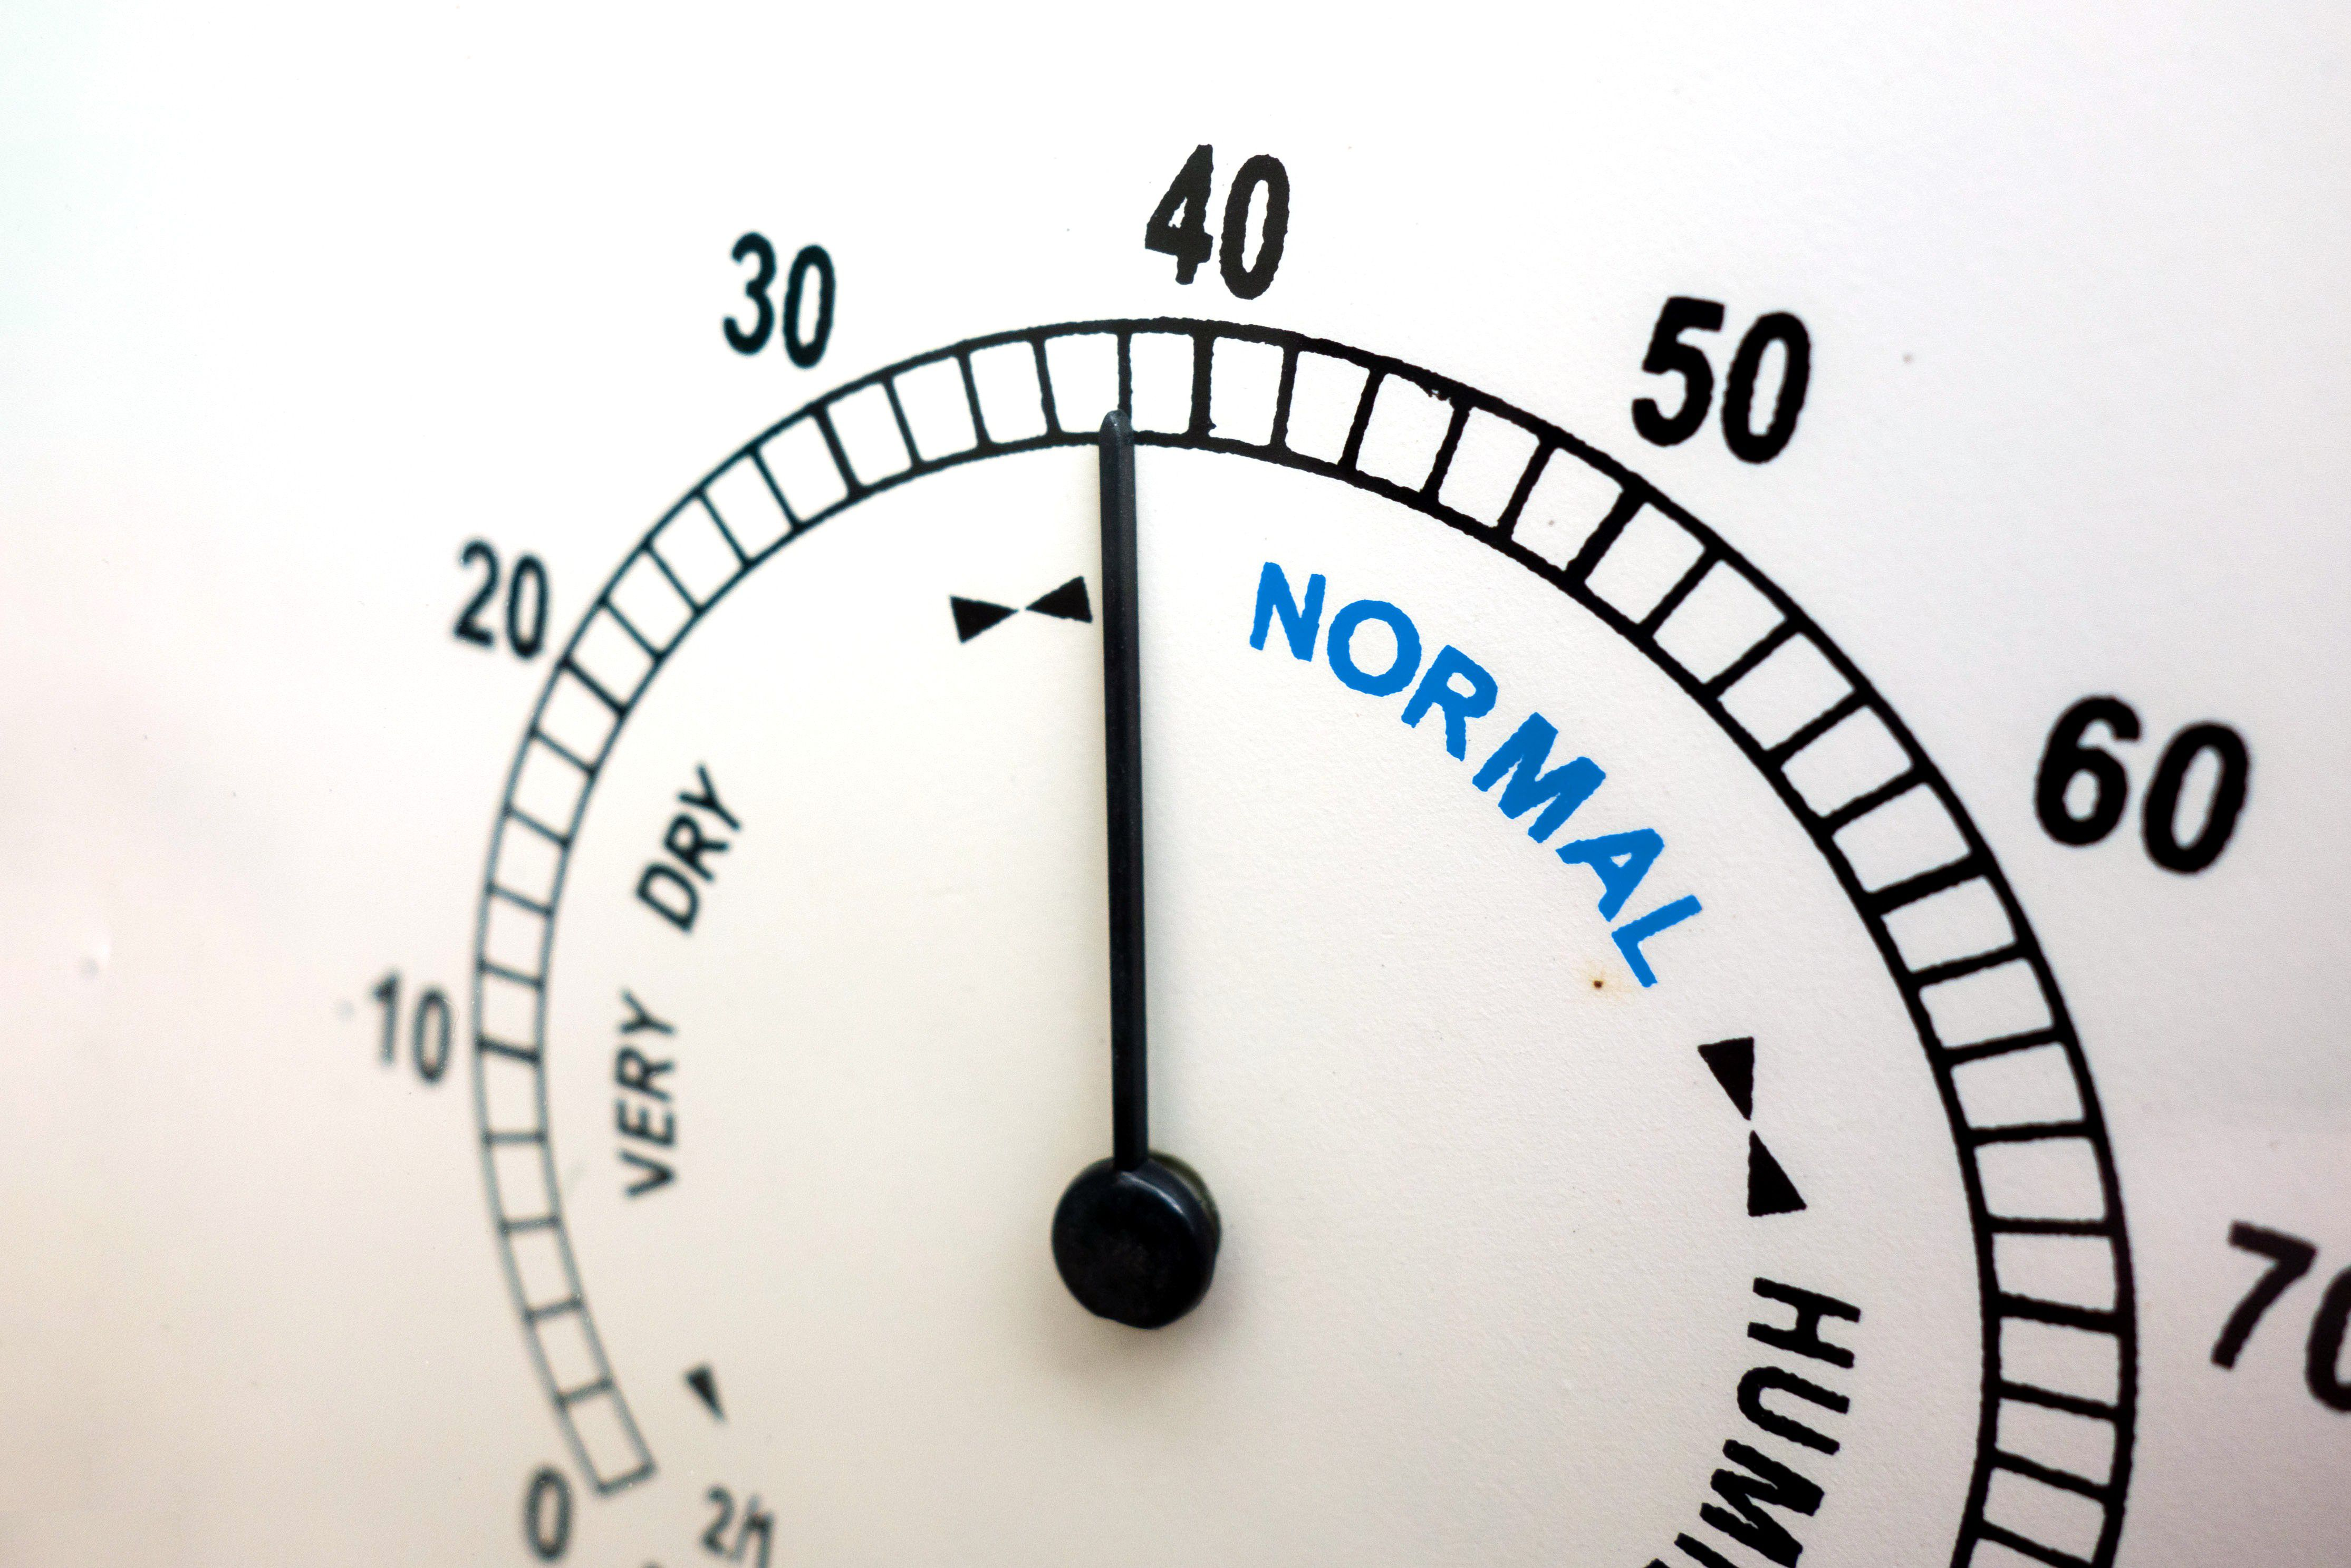 The dial on a hygrometer indicates slightly dry conditions